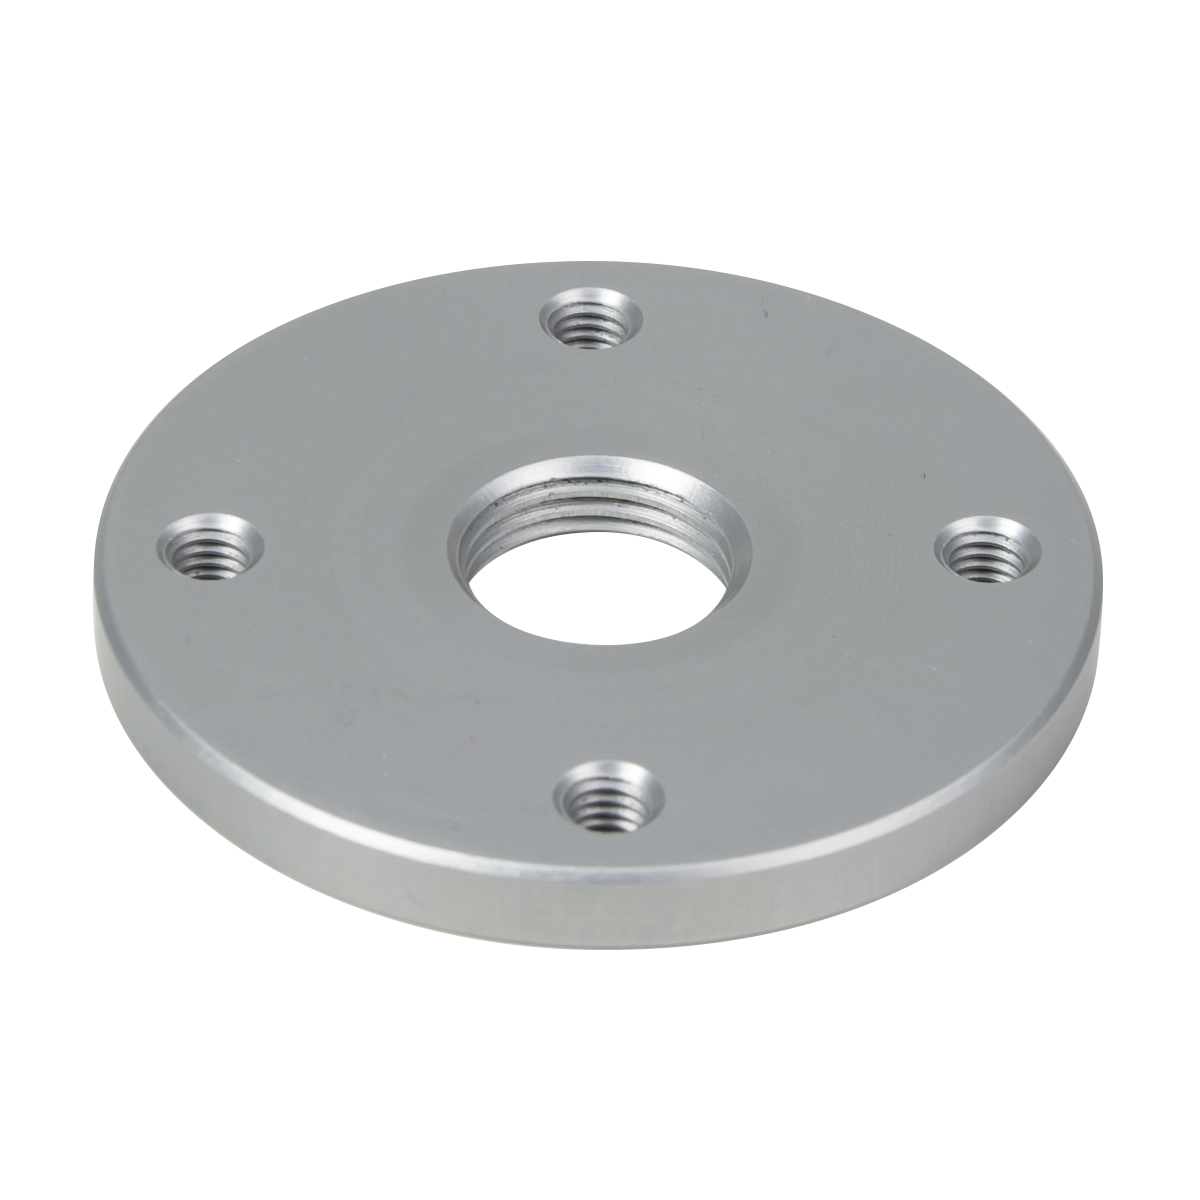 4-Hole Lamination Plate, Round, Threaded Hole, Al